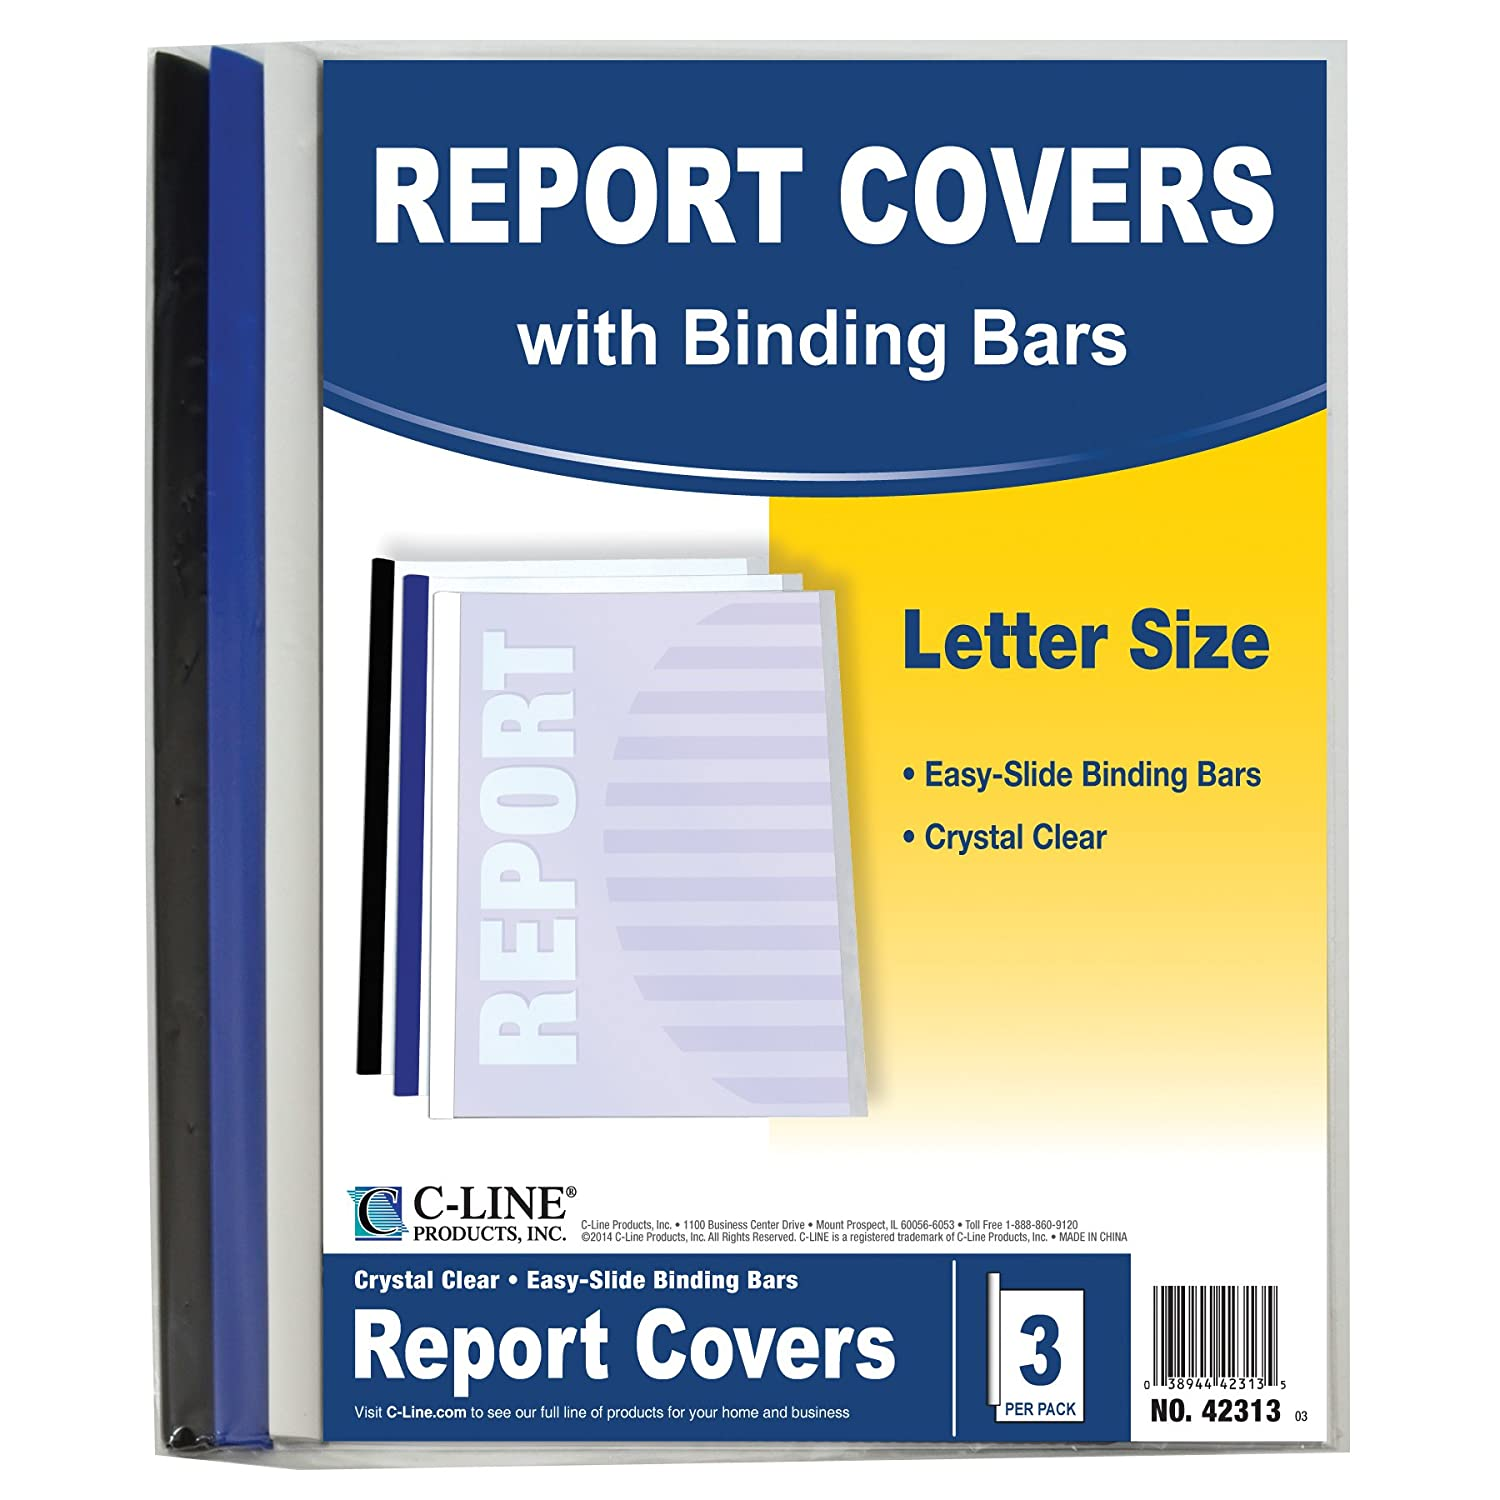 C-Line Report Covers with Binding Bars, Red Vinyl, Red Bars, 8.5 x 11 Inches, 50 per Box (32554) C-Line Products Inc.